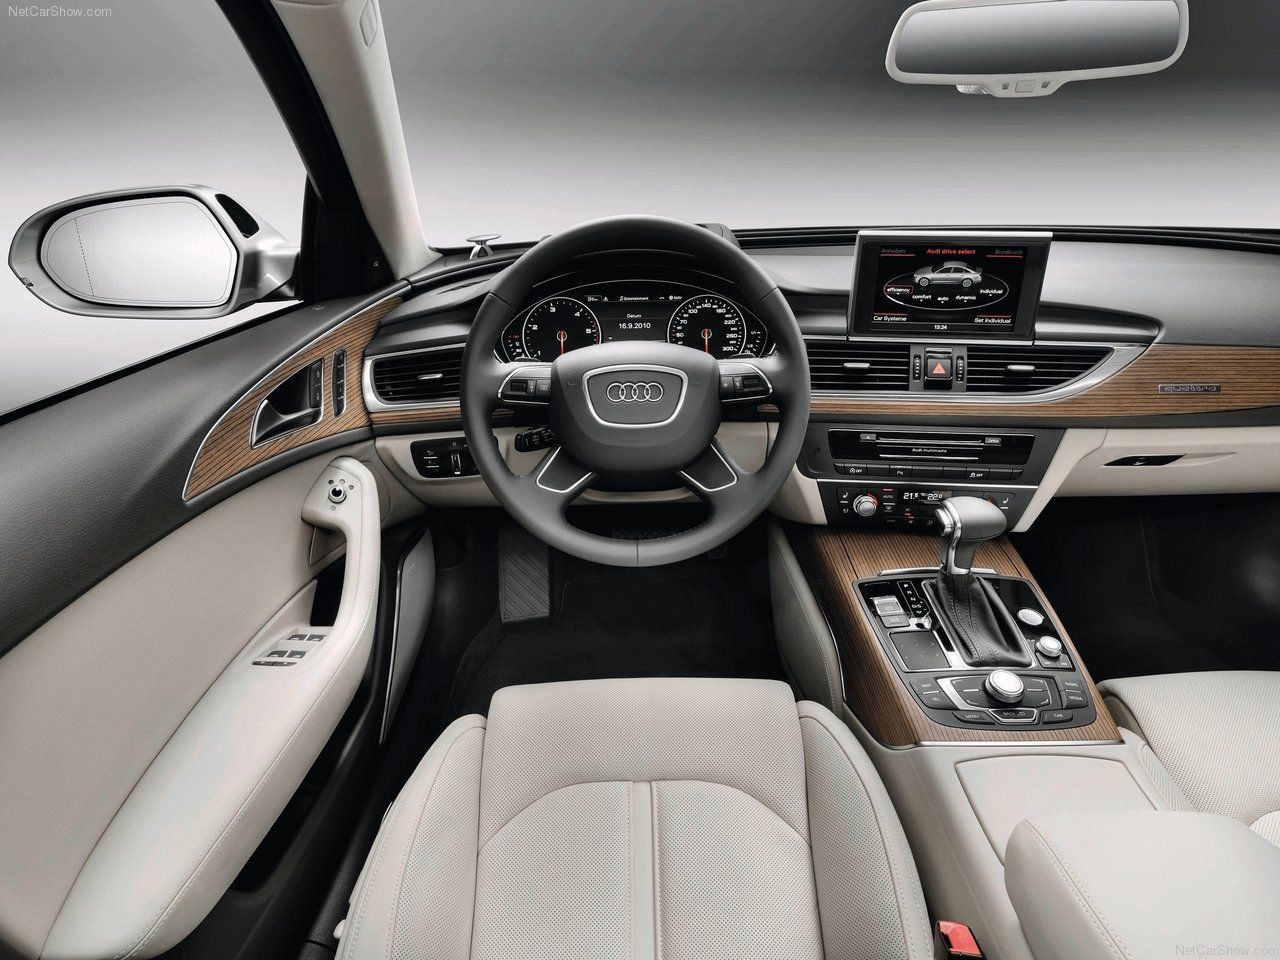 Audi A6 Interior That S What It S All About Cars Audi Audi